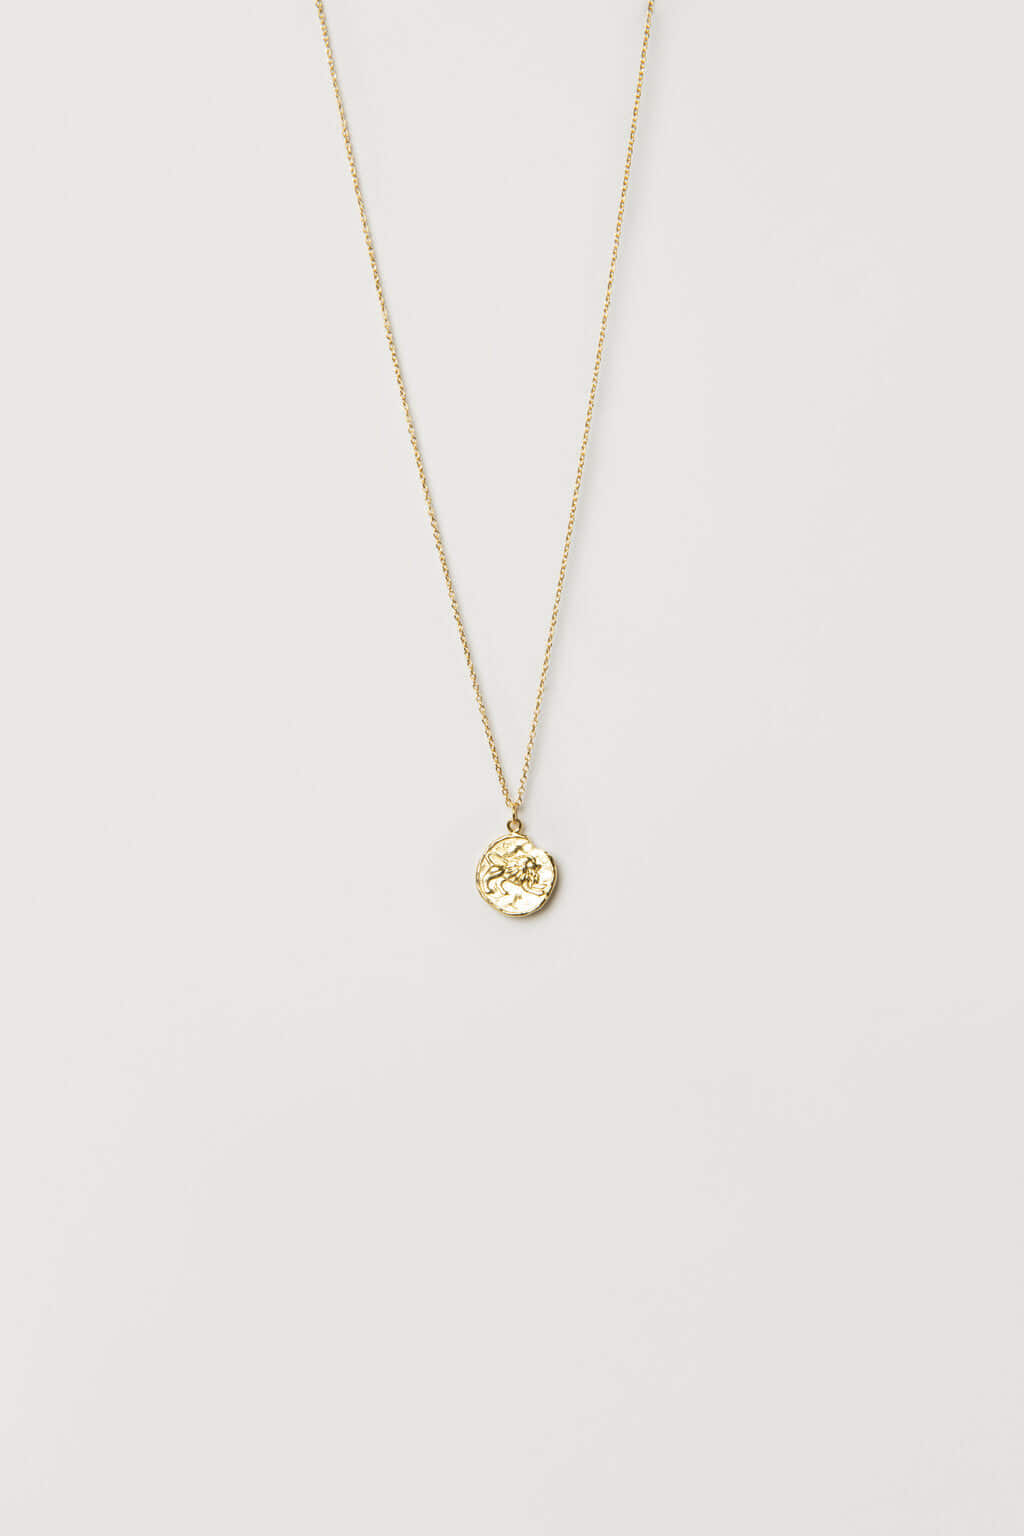 Necklace K005 Gold 1